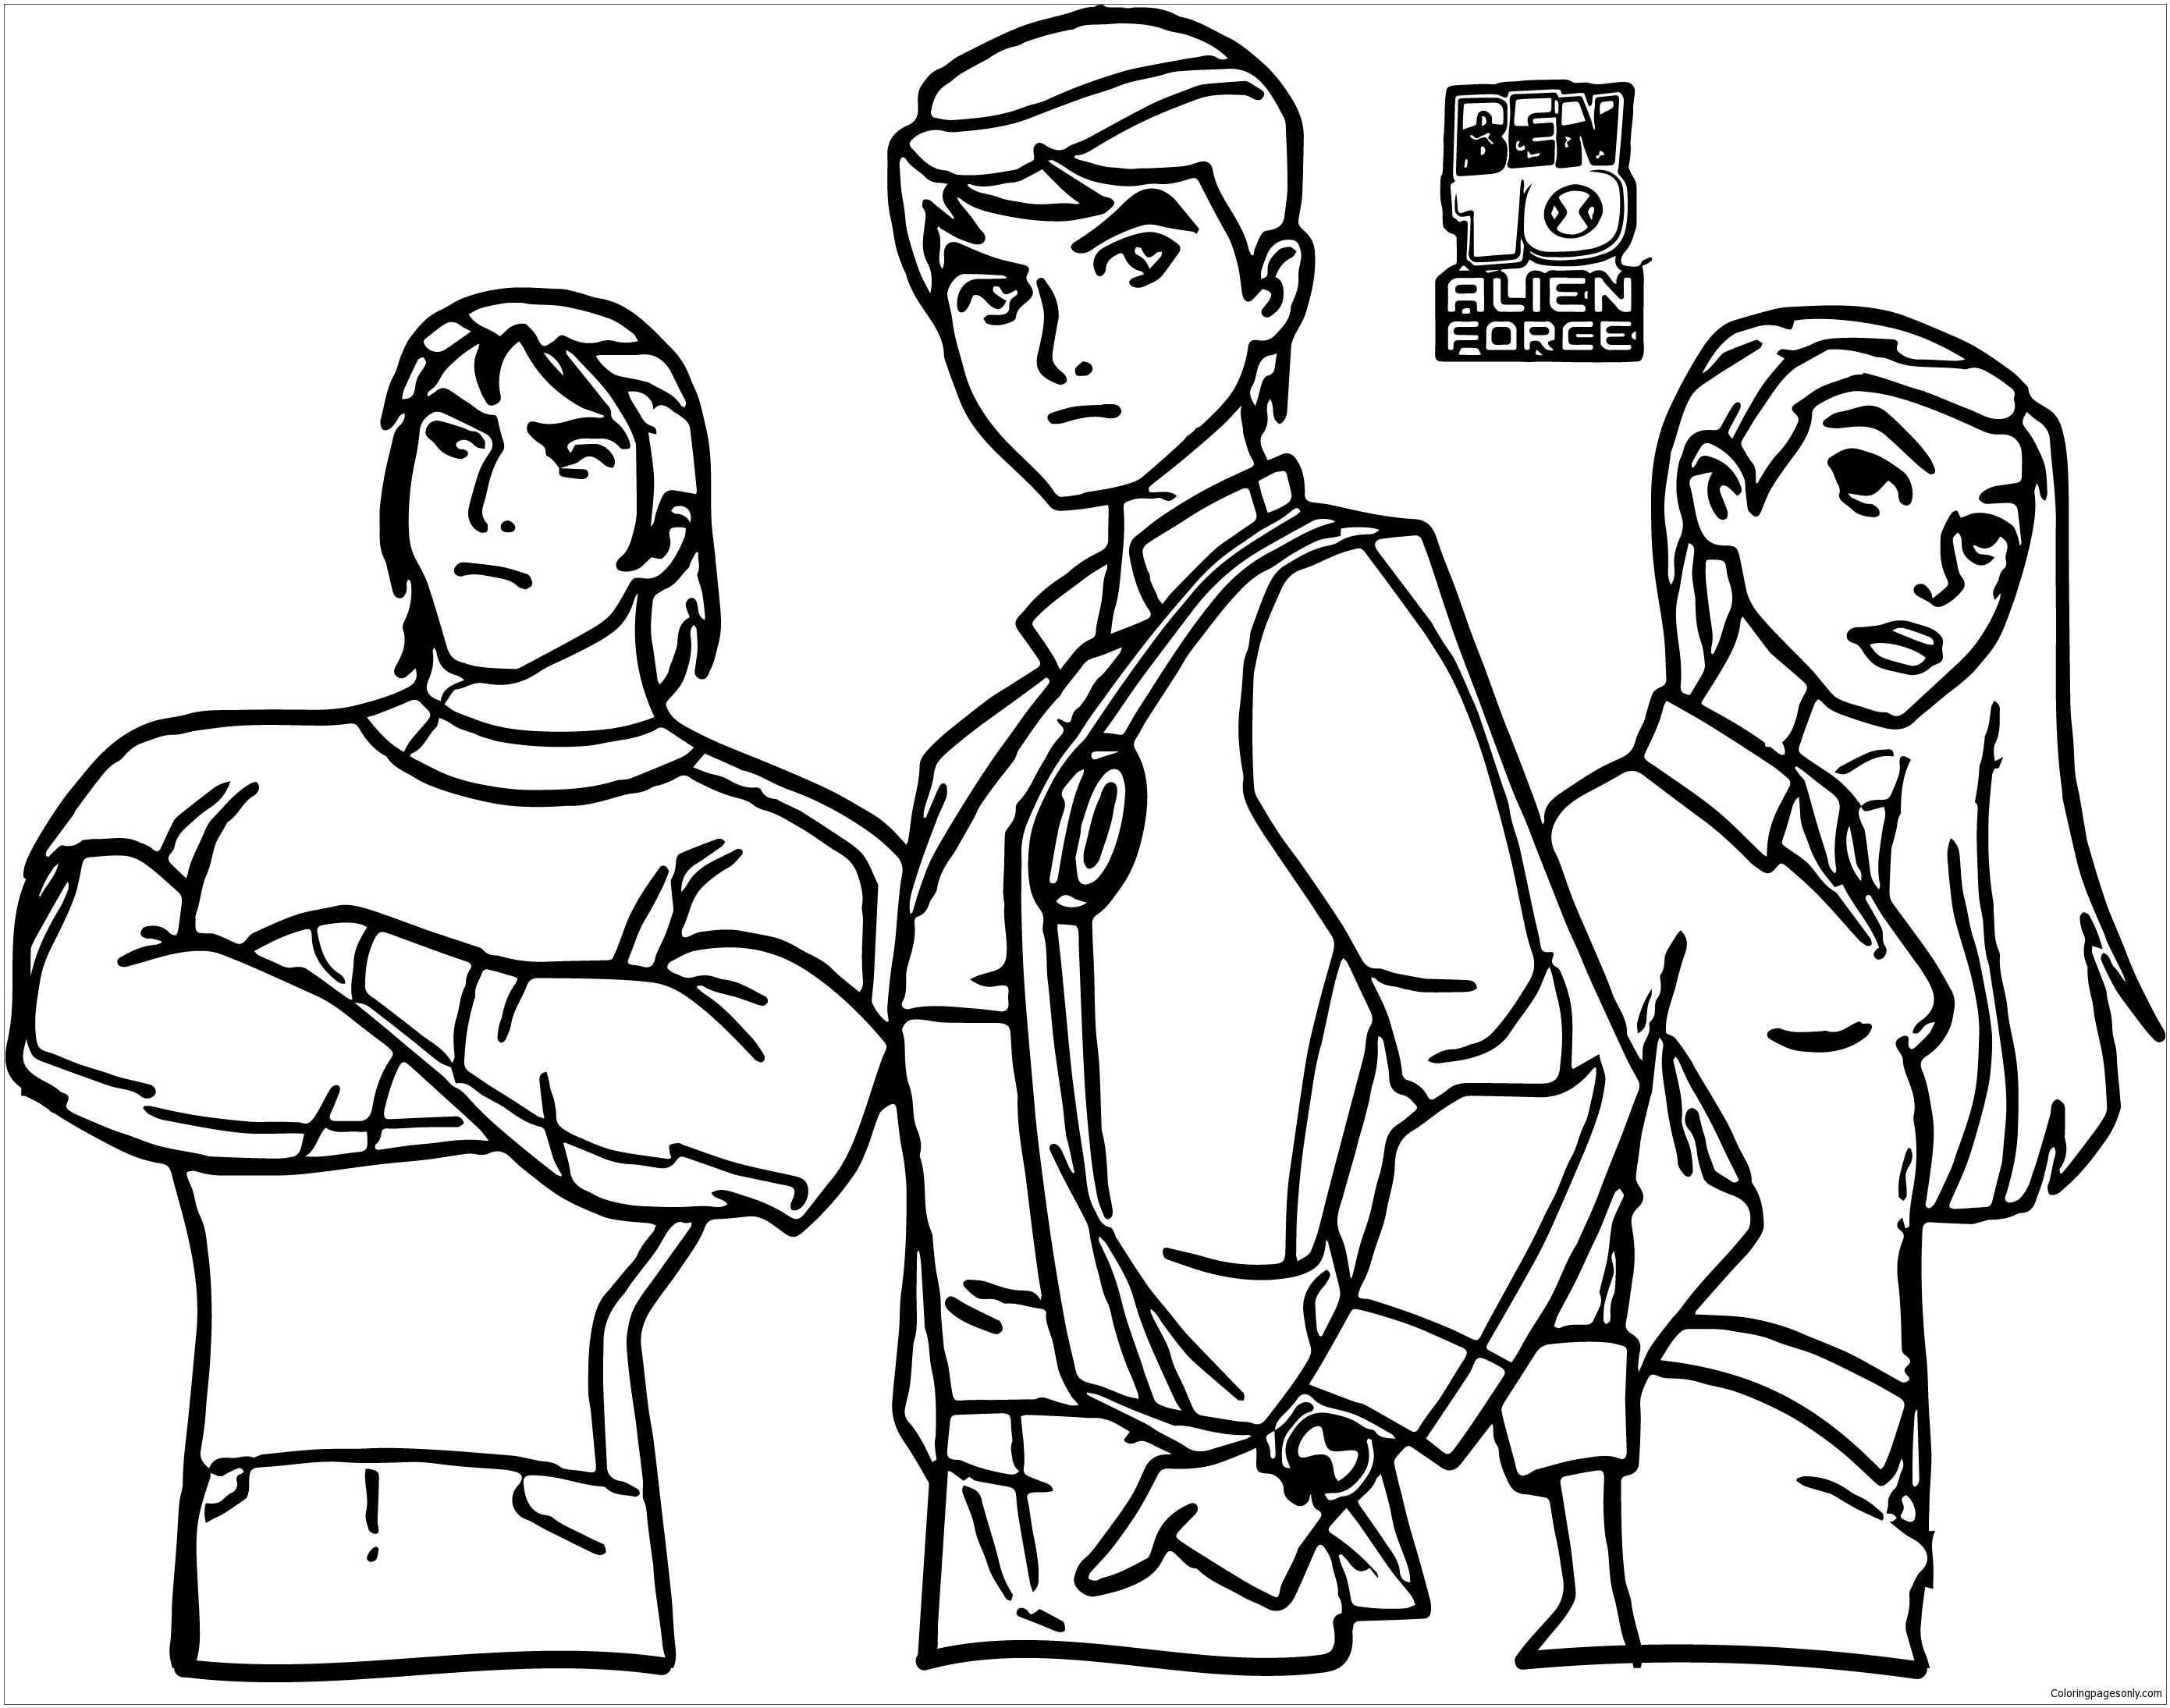 coloring pages of ben 10 aliens ben 10 alien force coloring pages getcoloringpagescom ben 10 coloring aliens of pages